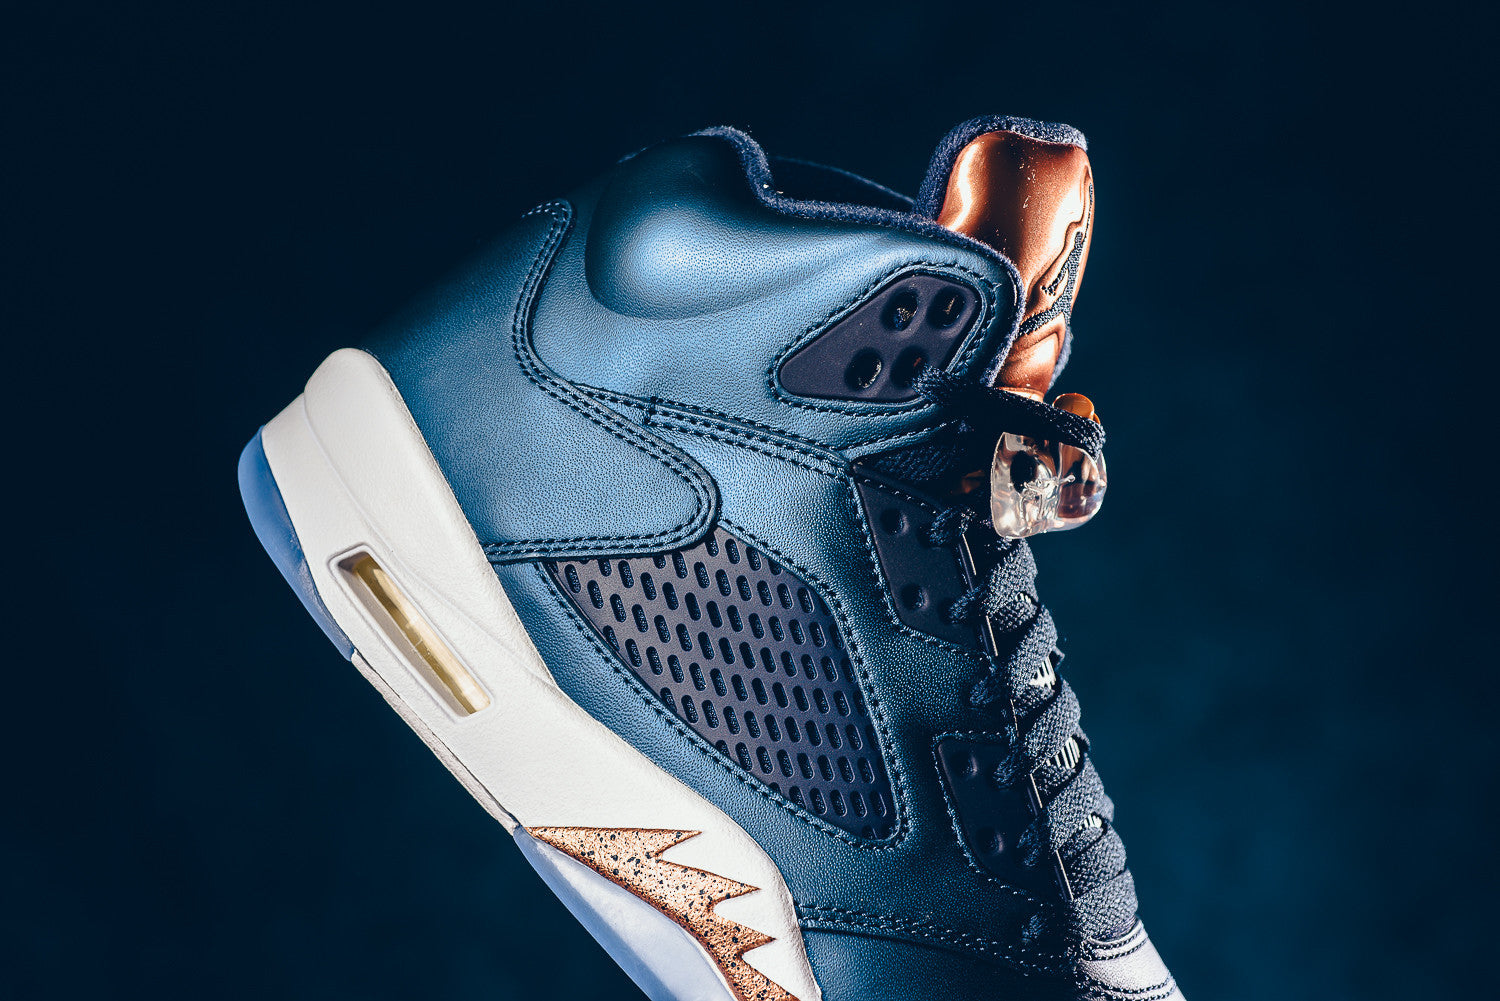 air jordan bronze 5 with matching bronze 5 silky socks